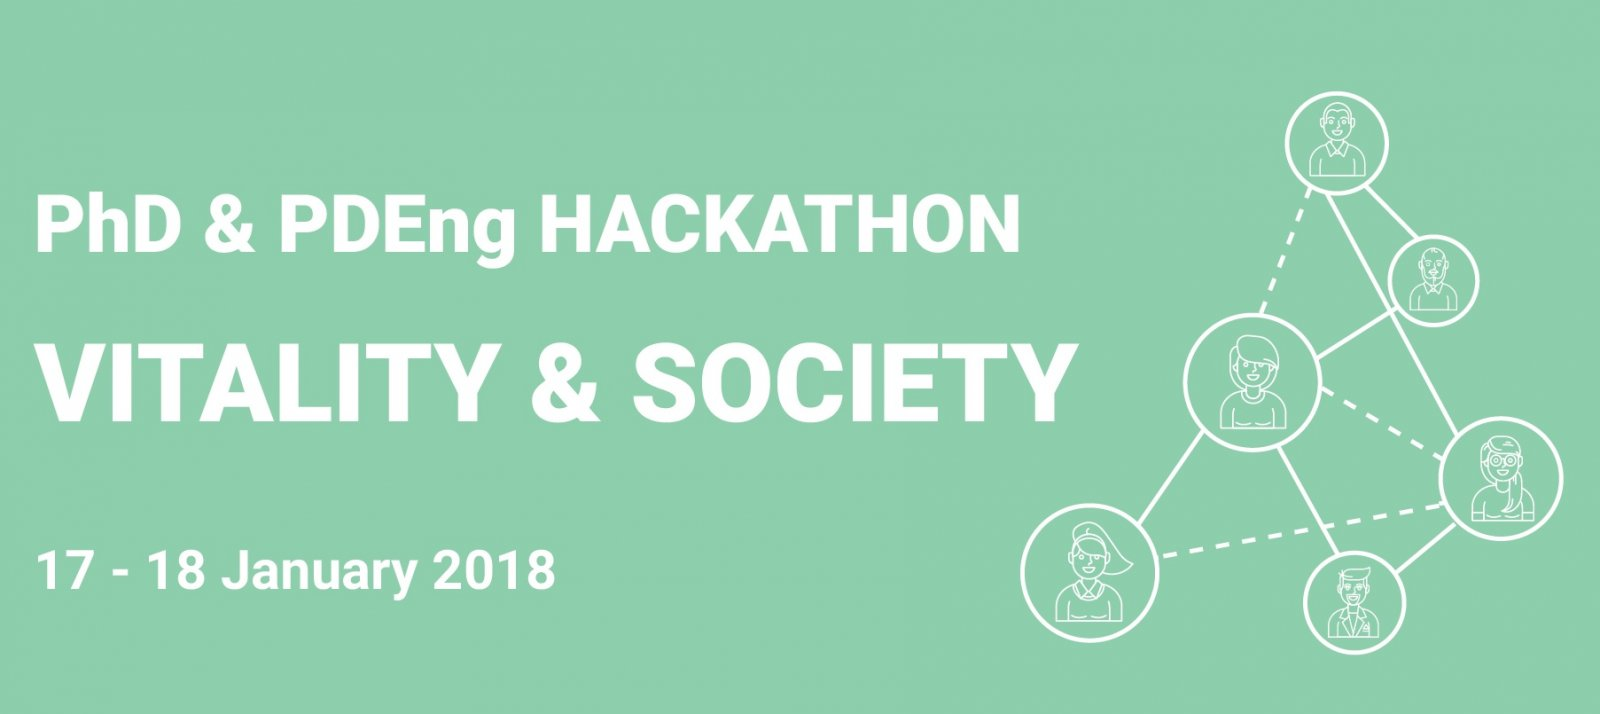 PhD and PDEng Hackathon